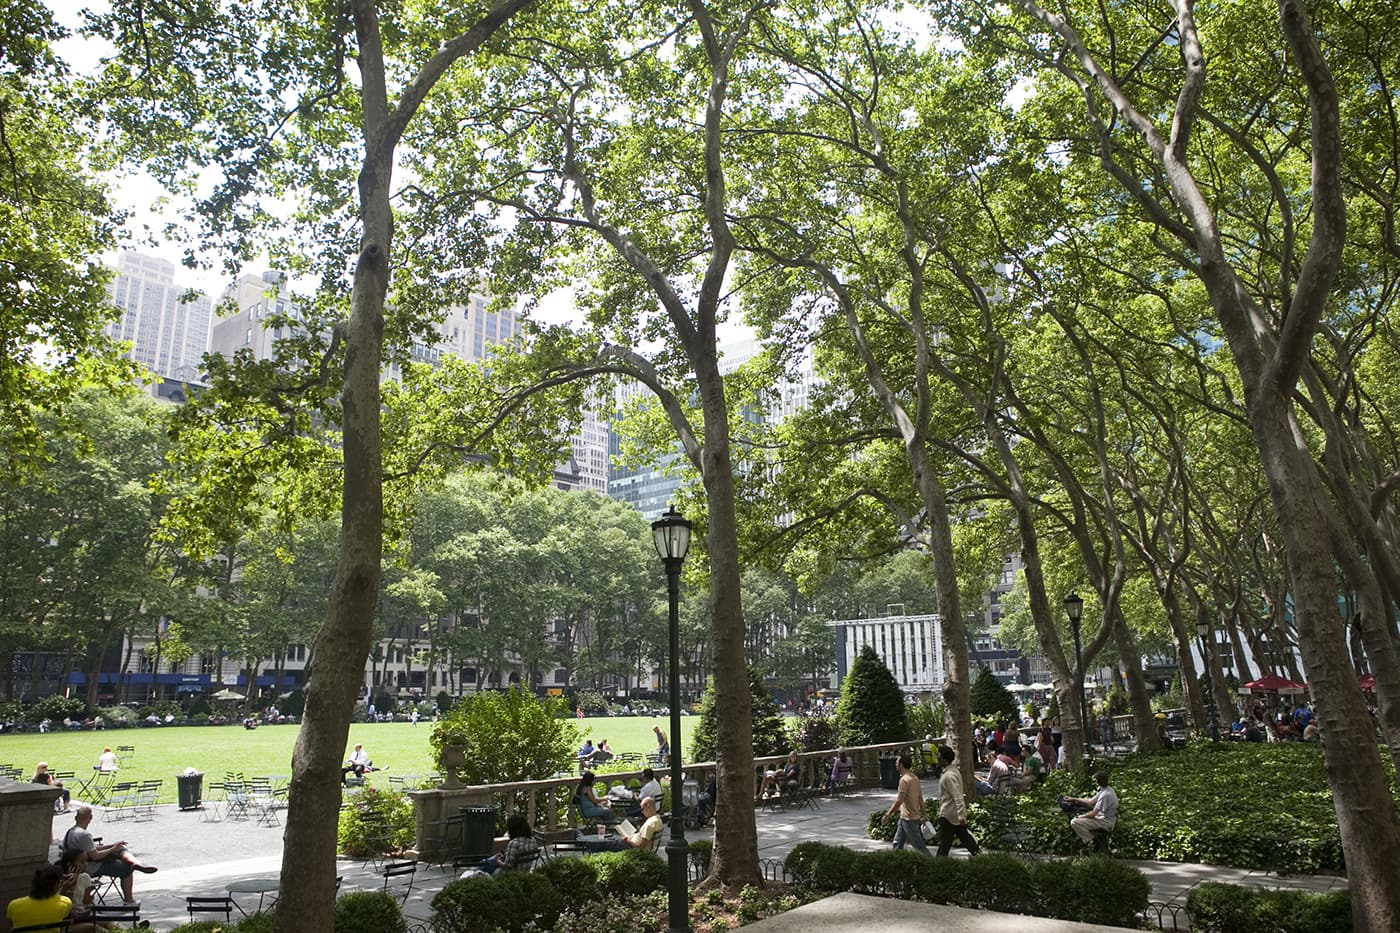 Bryant Park in New York City.